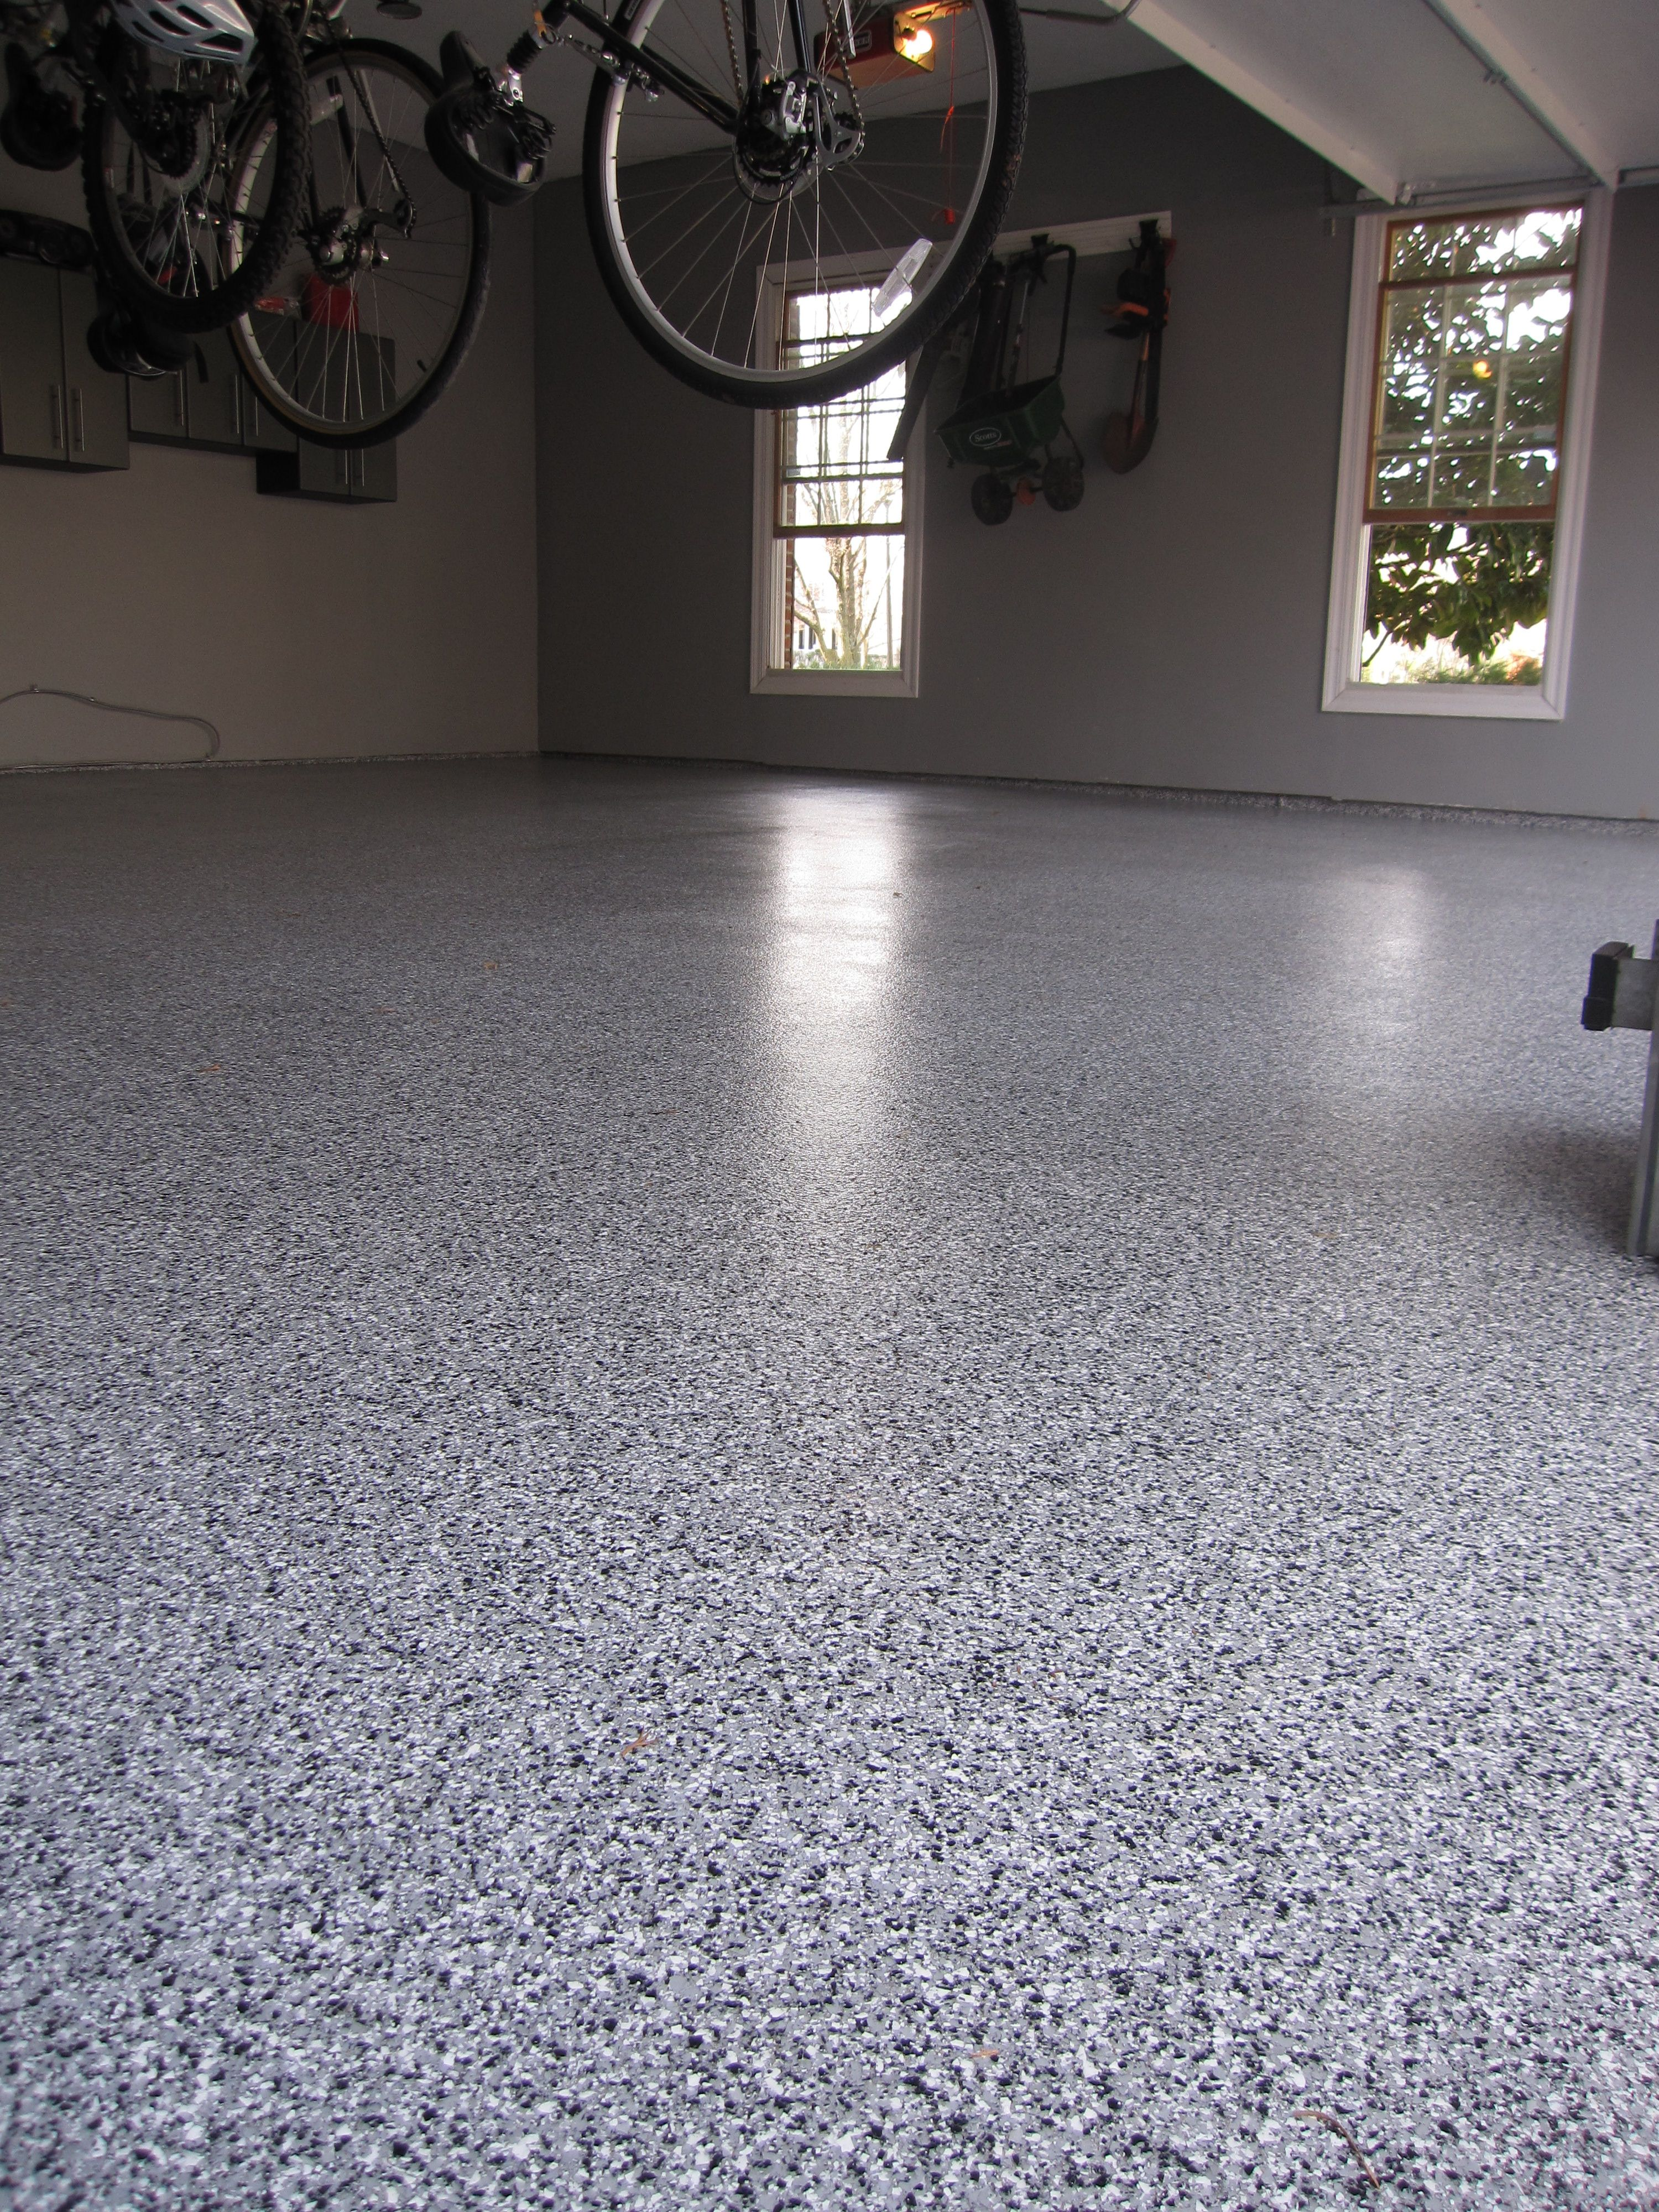 Epoxy Garage Floor Melbourne Cost The Stunning Look Of Terrazzo At An Affordable Cost Learn More